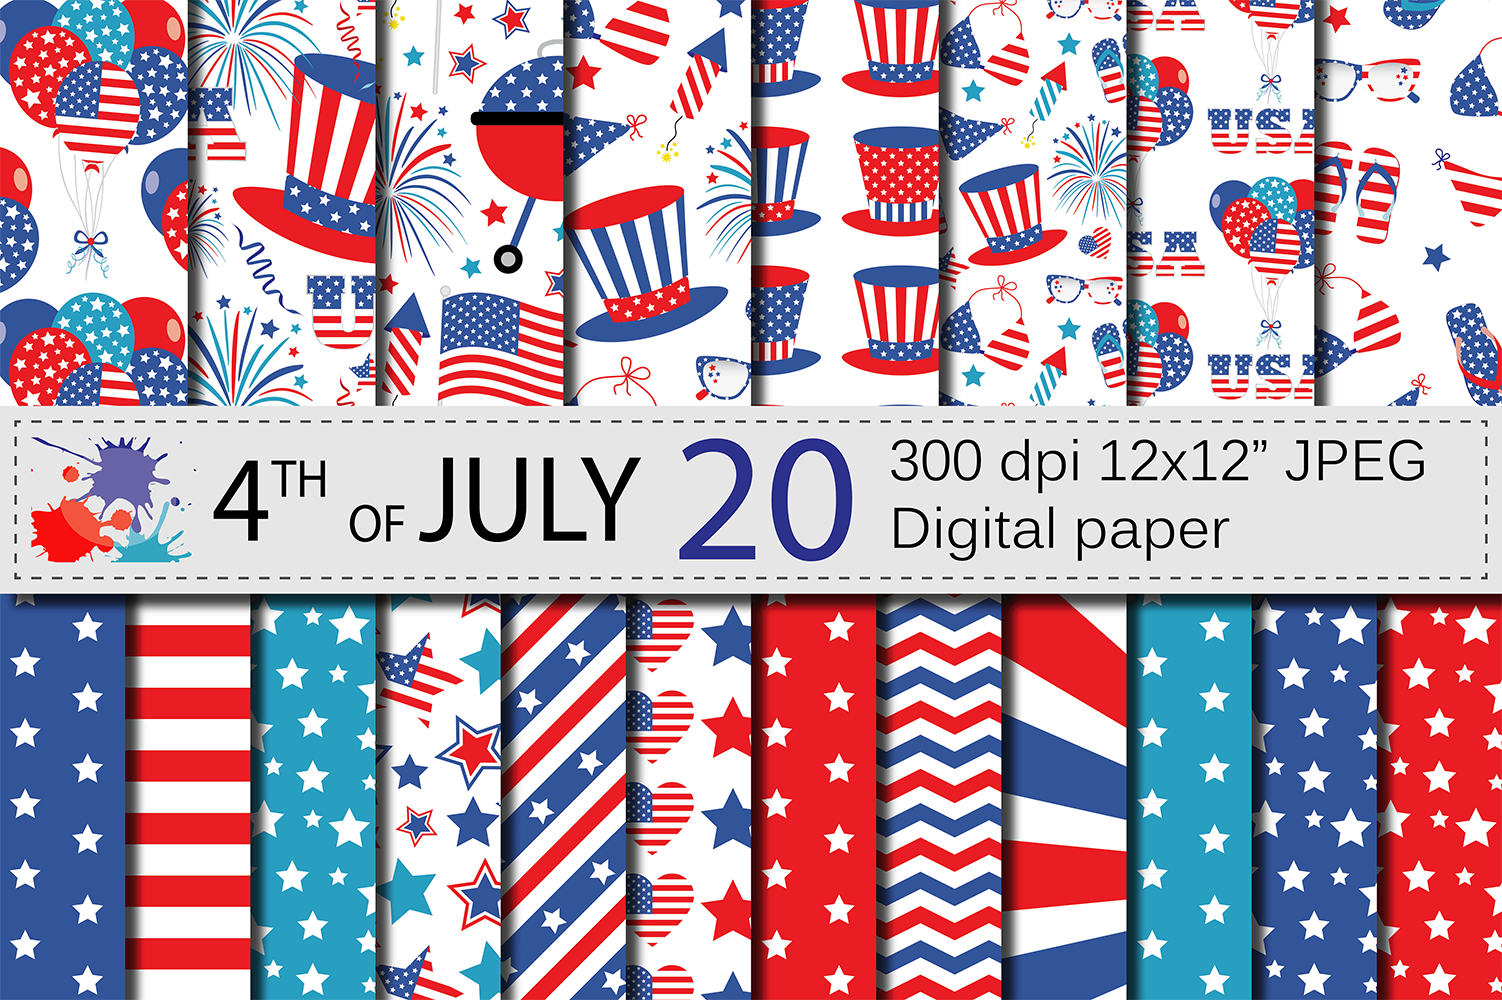 4th of July Digital Paper / USA Independence Day backgrounds / American patriotic Scrapbook paper example image 1